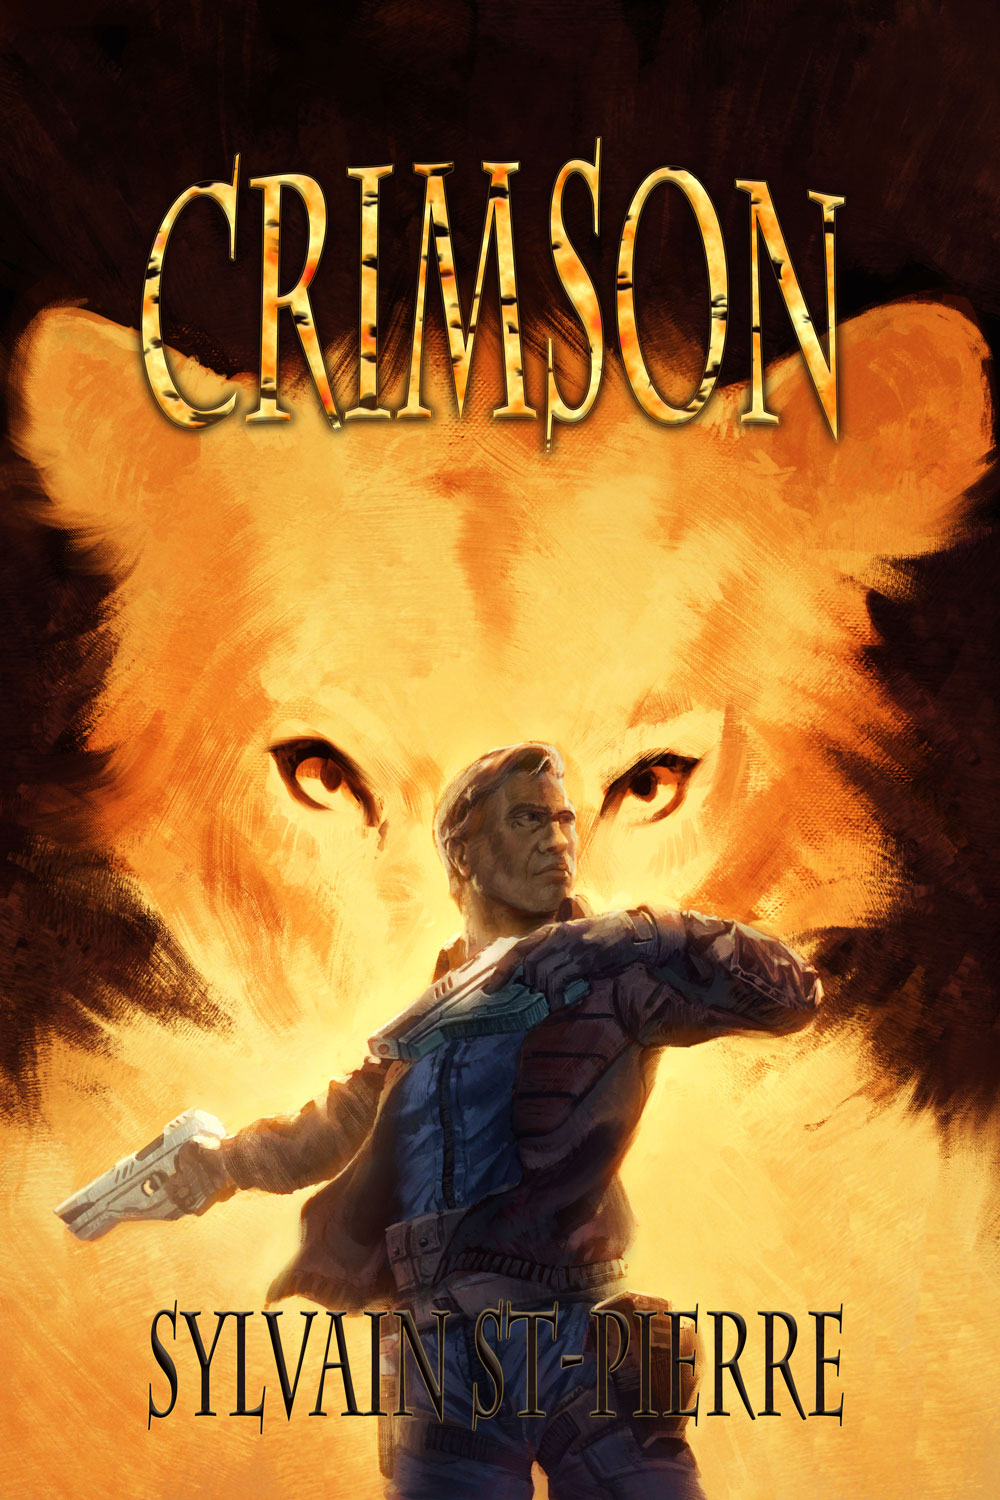 Crimson is now available for purchase